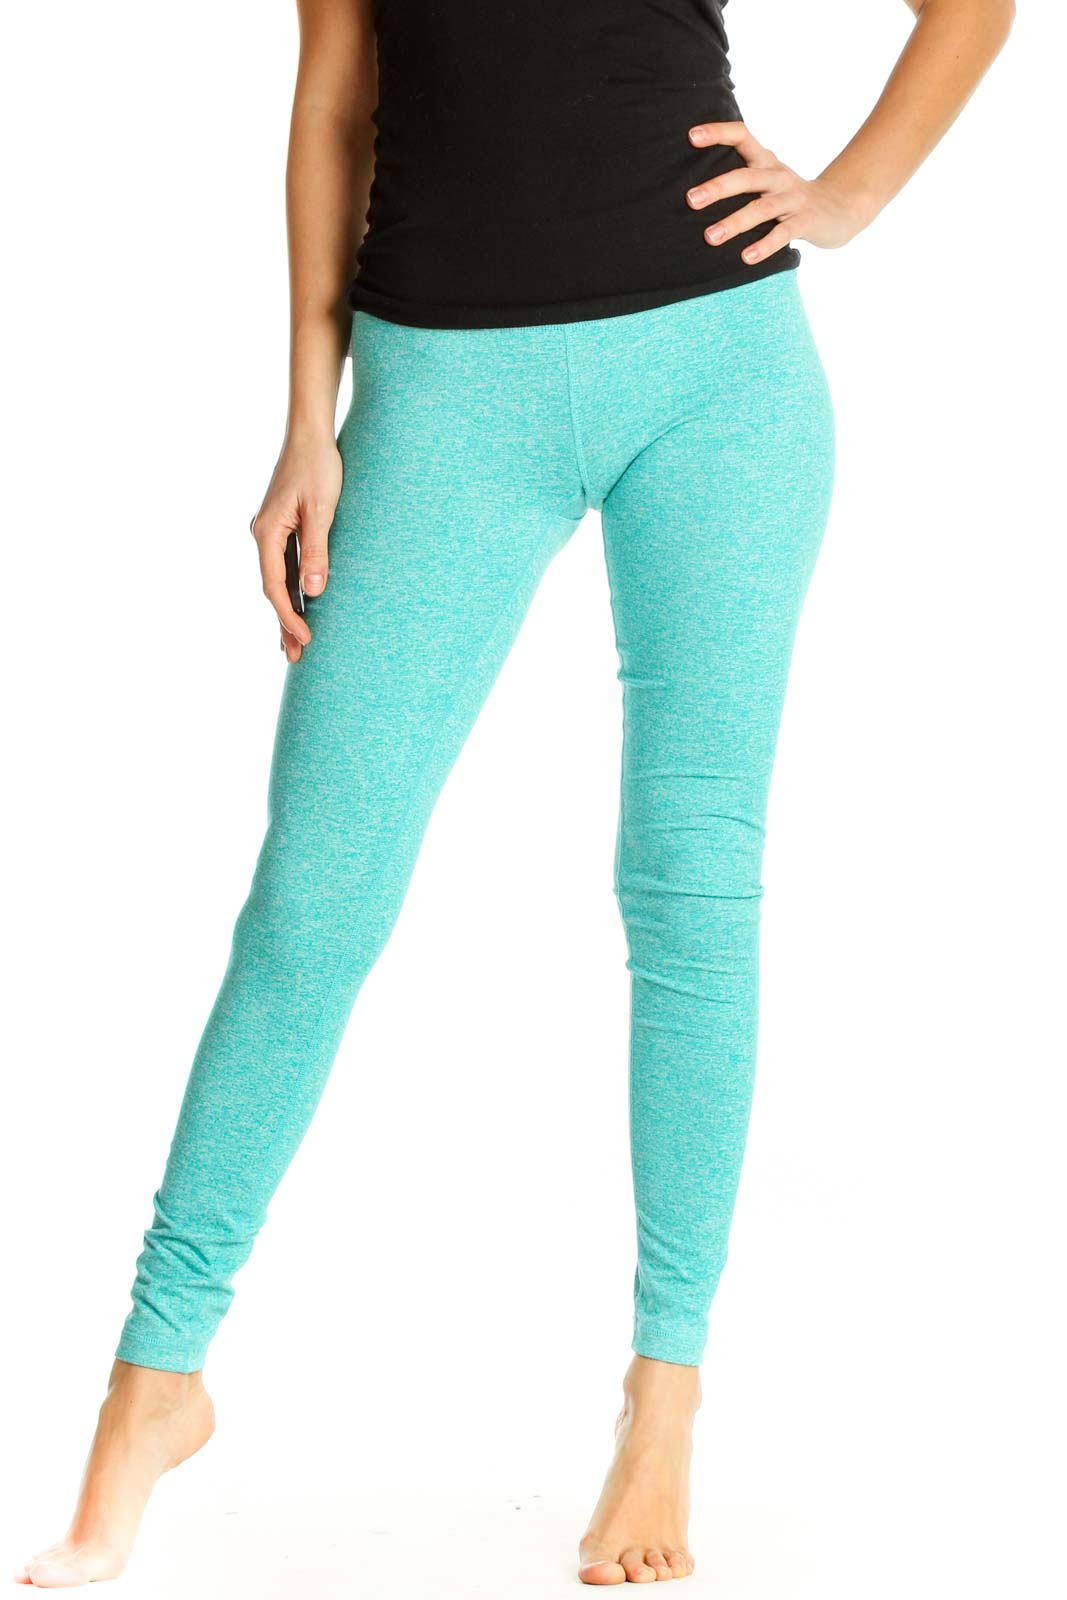 Blue Printed Activewear Leggings Front